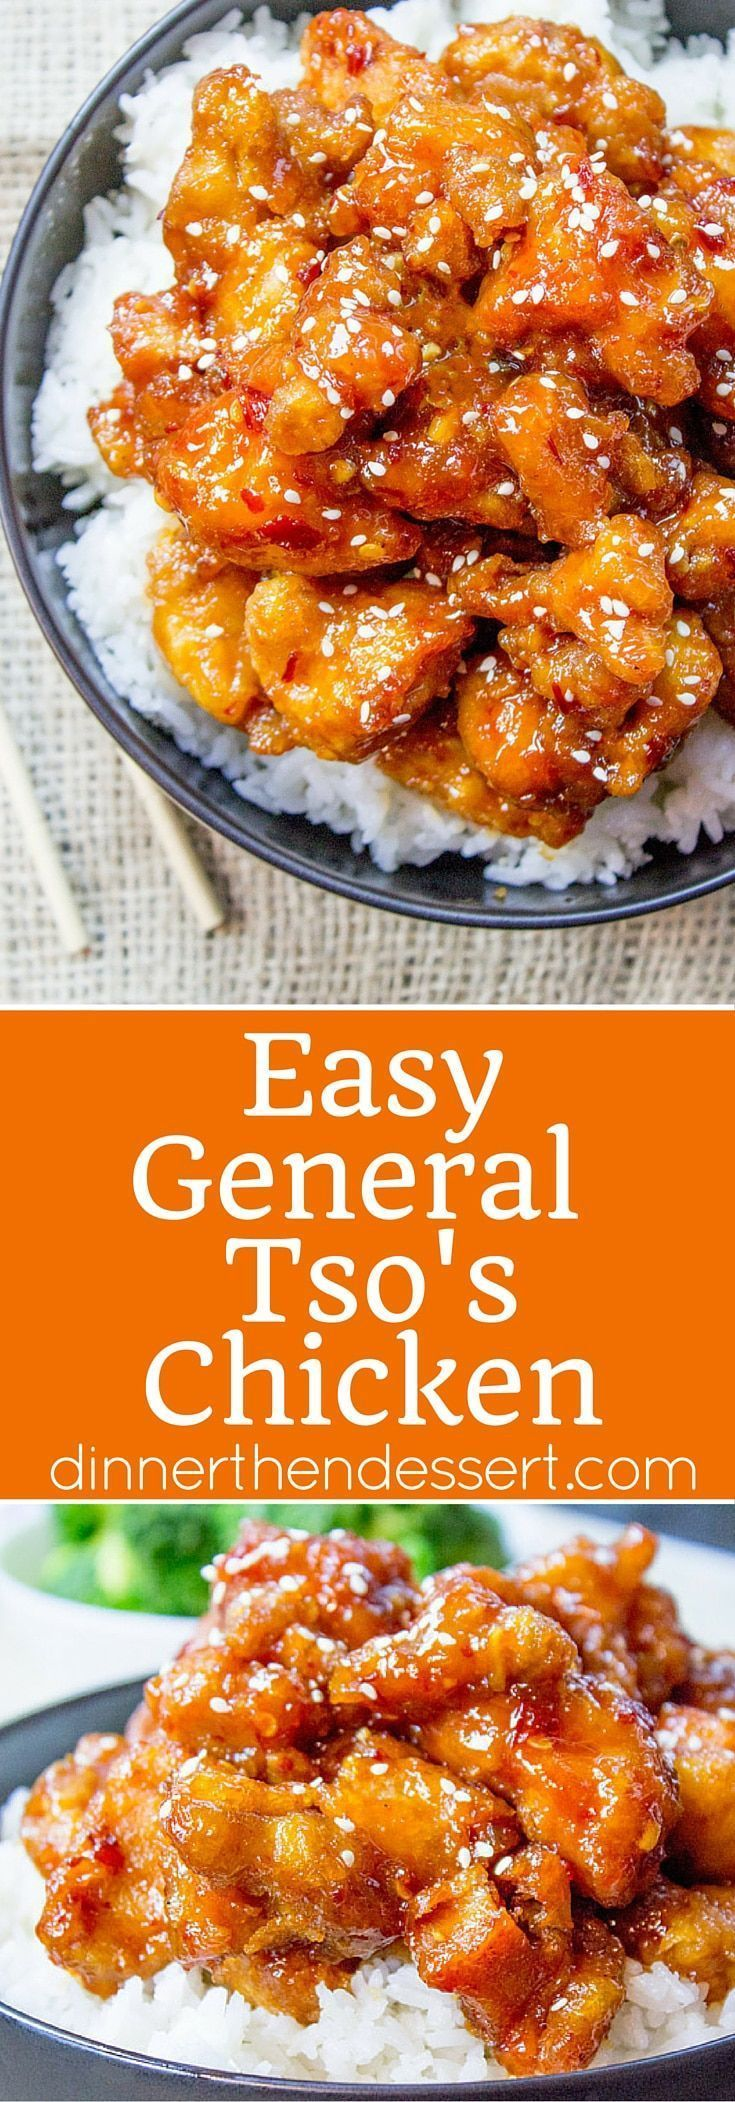 284 best chinese food recipes images on pinterest general tsos chicken is a favorite chinese food takeout choice that is sweet and slightly spicy forumfinder Image collections